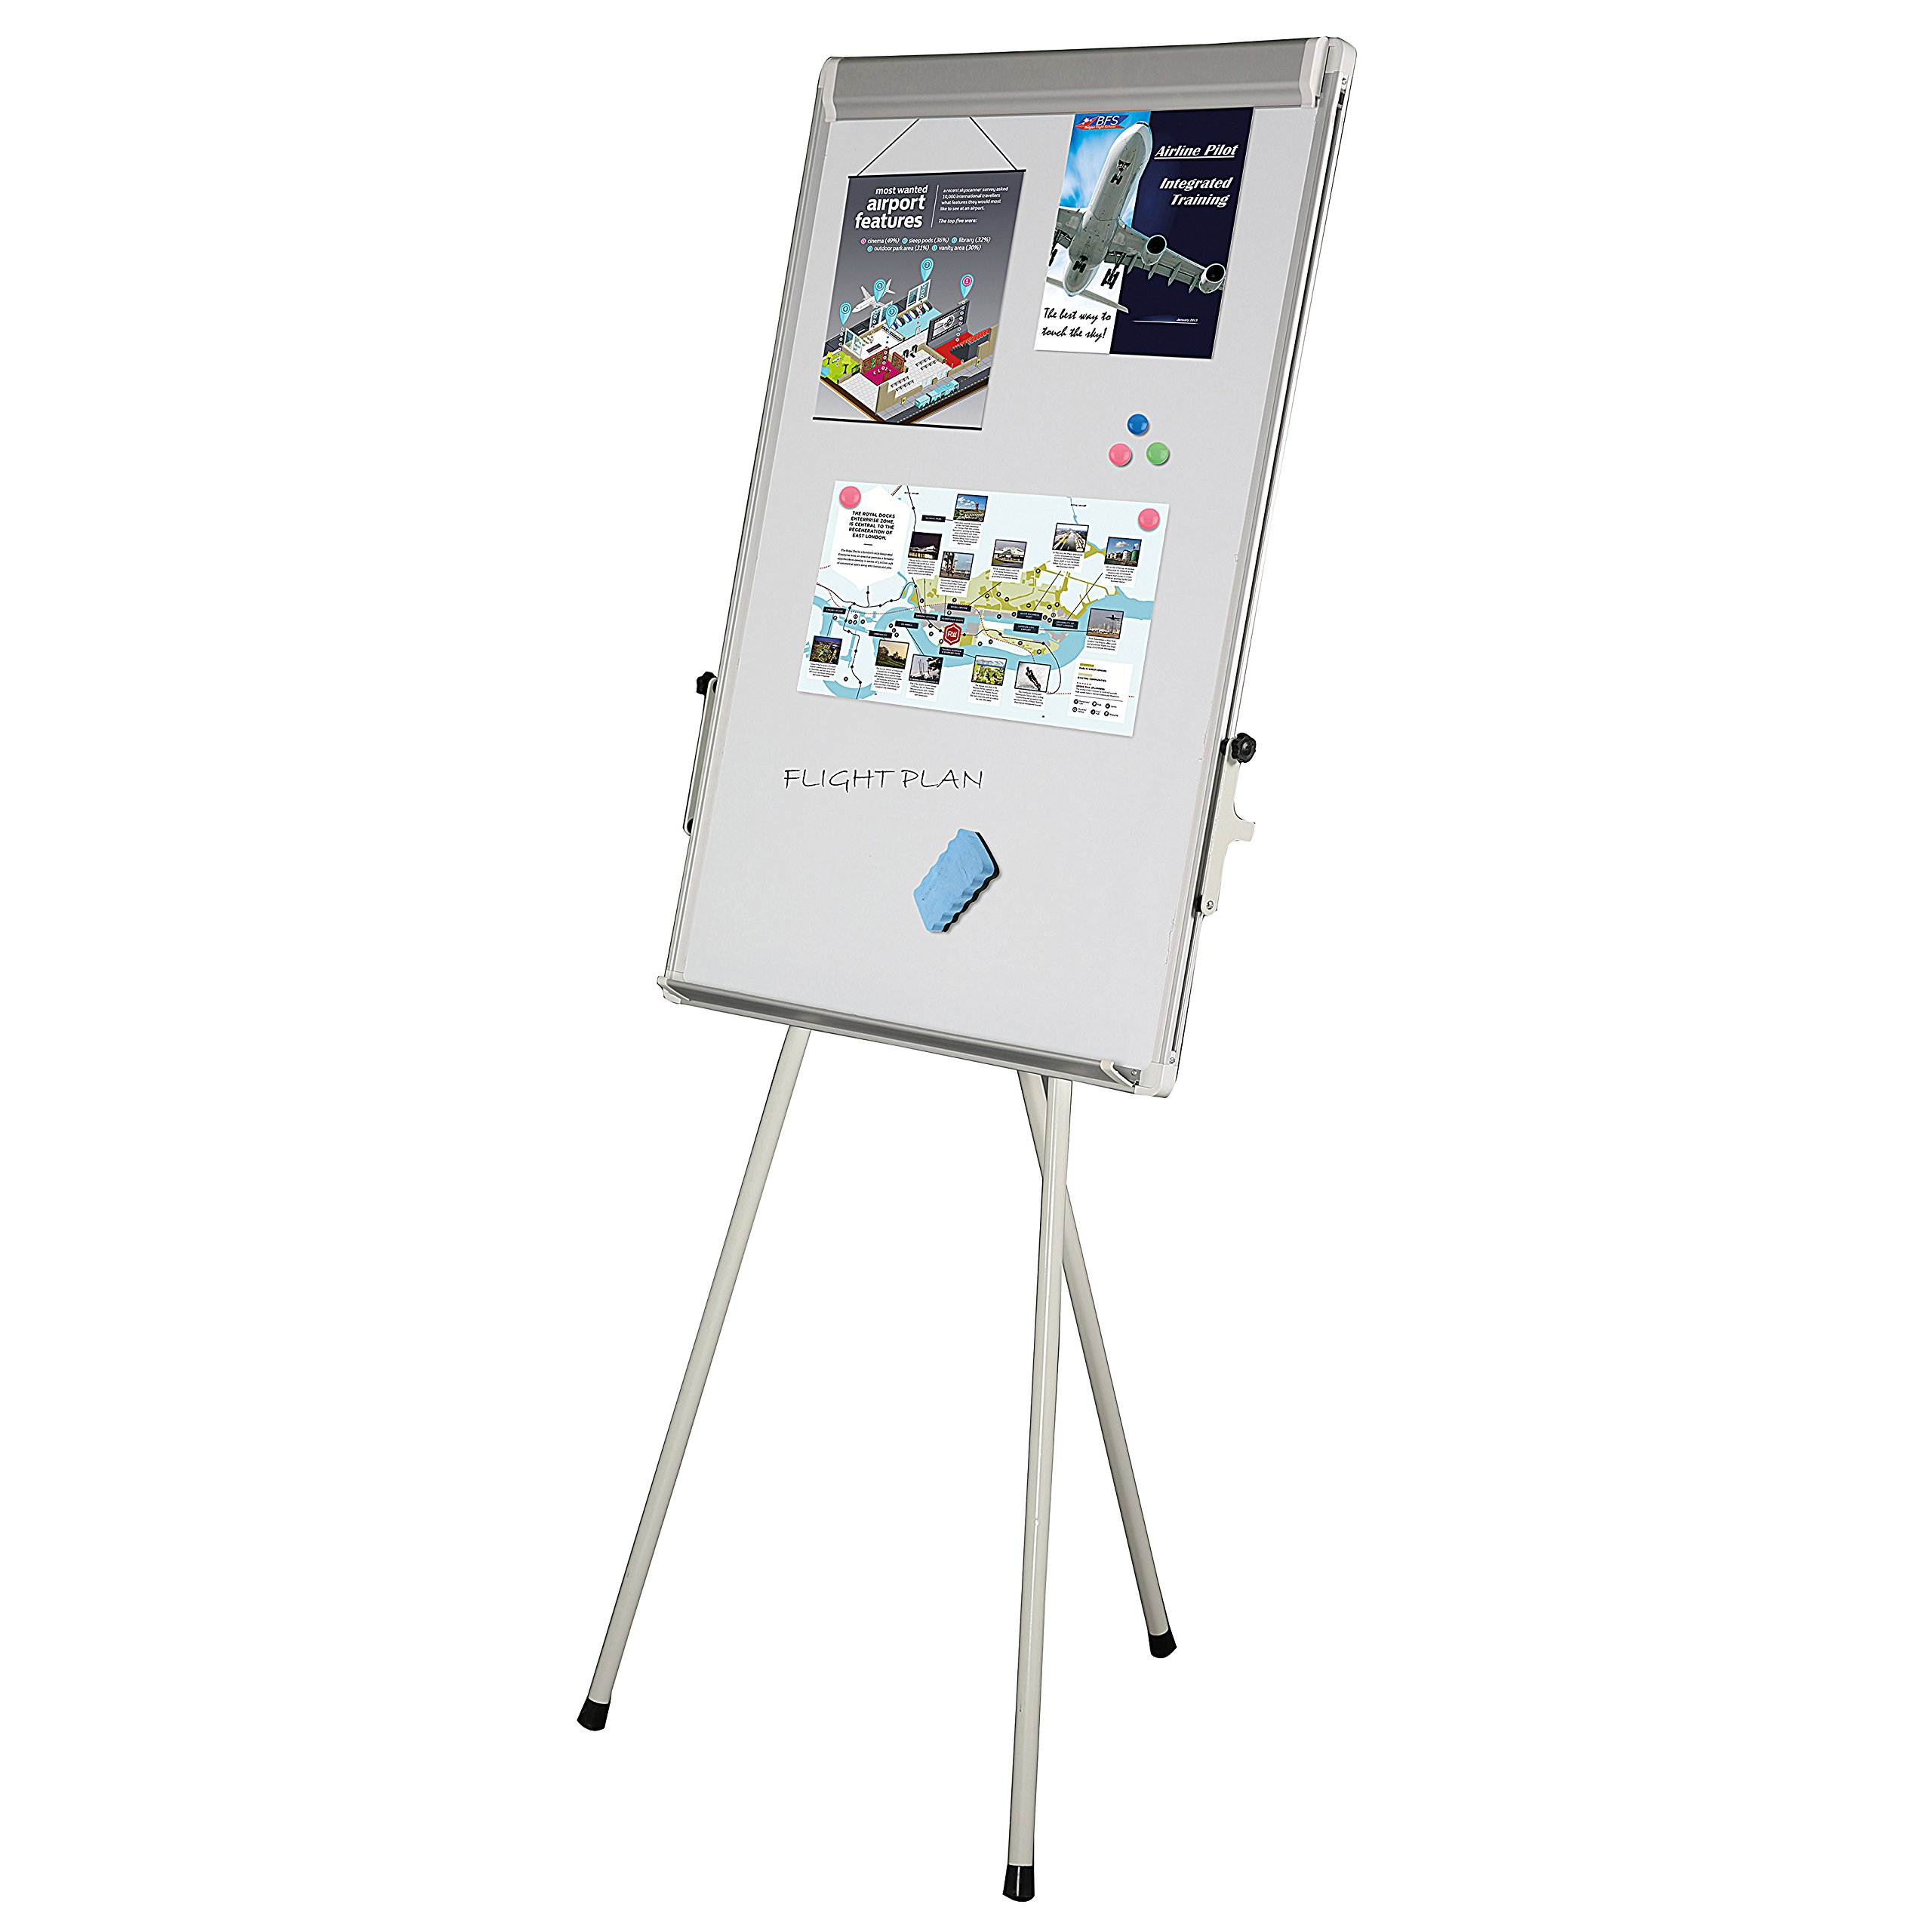 23x 35 height Adjustable Easel Flip chart Stand with Magnetic Surface – Silver